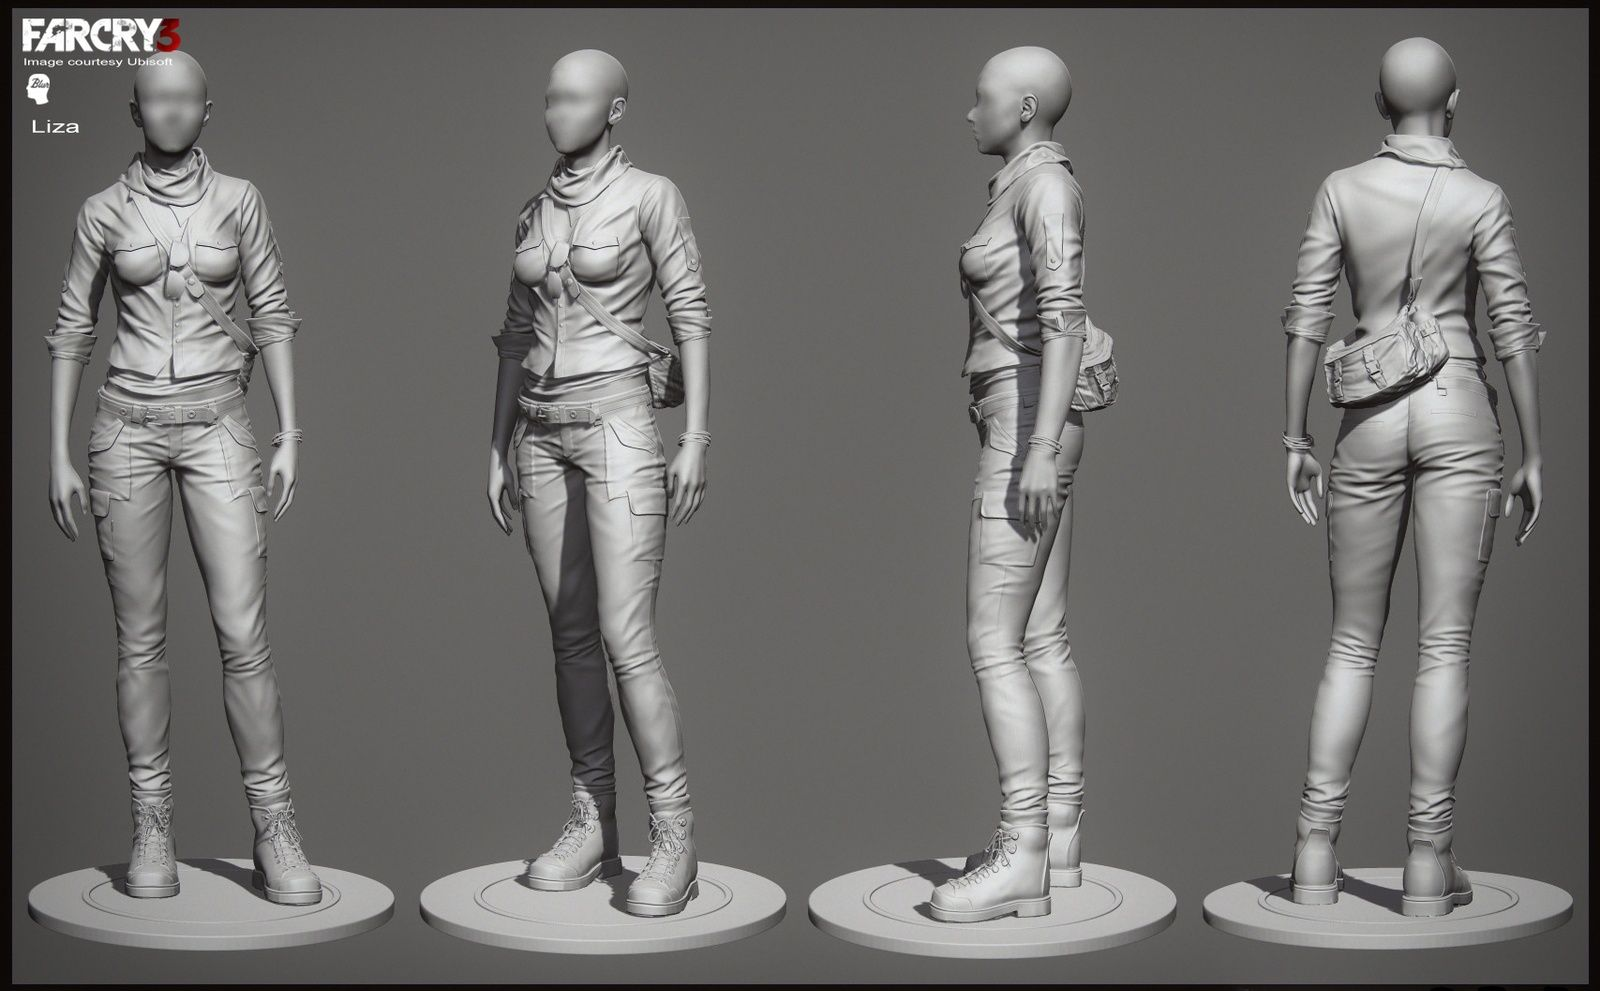 http://www.zbrushcentral.com/showthread.php?171132-Blur-Studio-Farcry-3-Cinematic-Character-Art